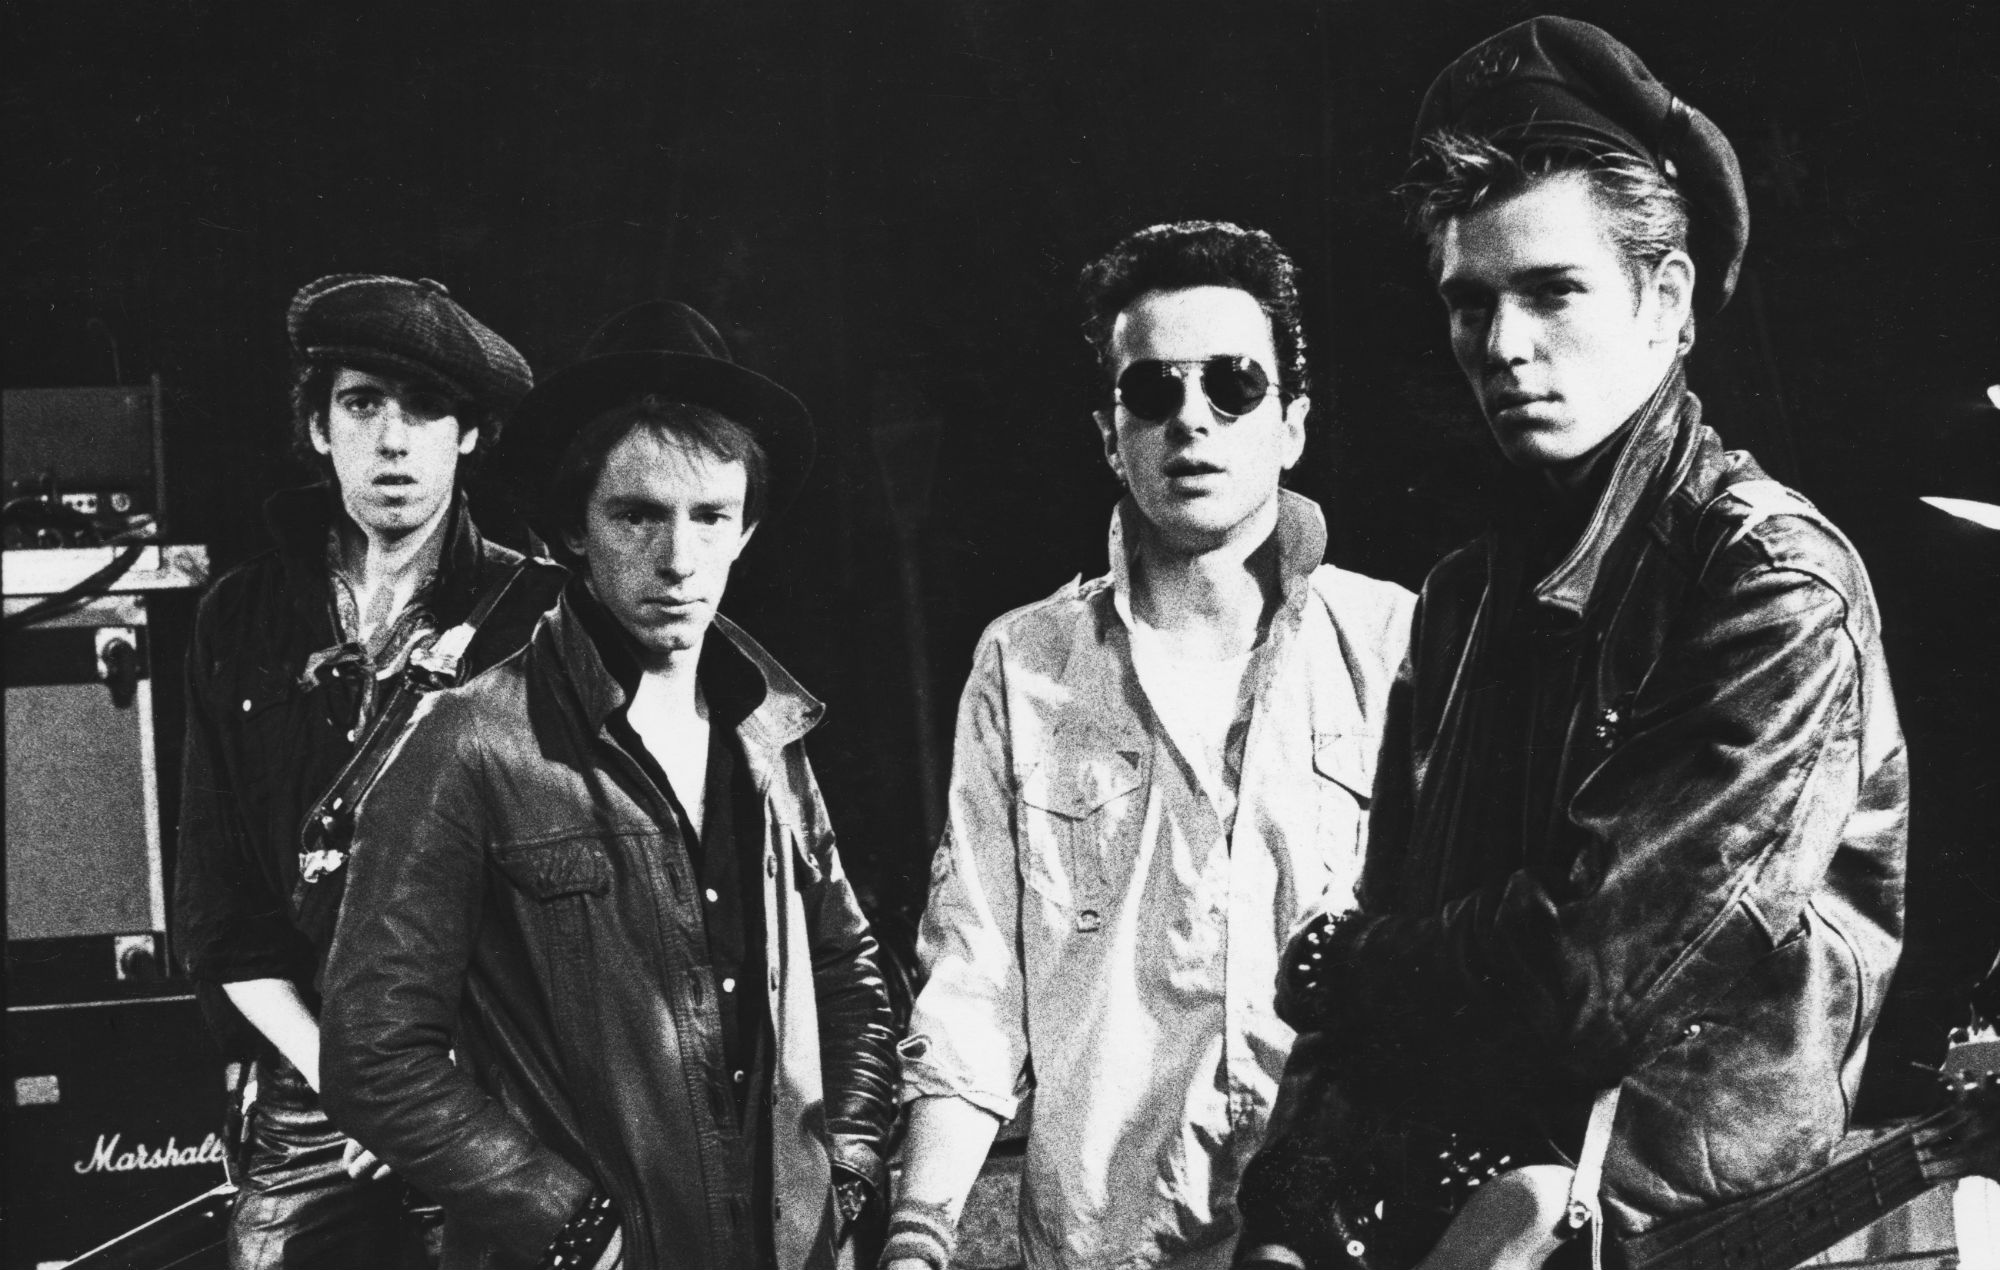 London Calling! Here's a look inside The Clash's brilliant new exhibition